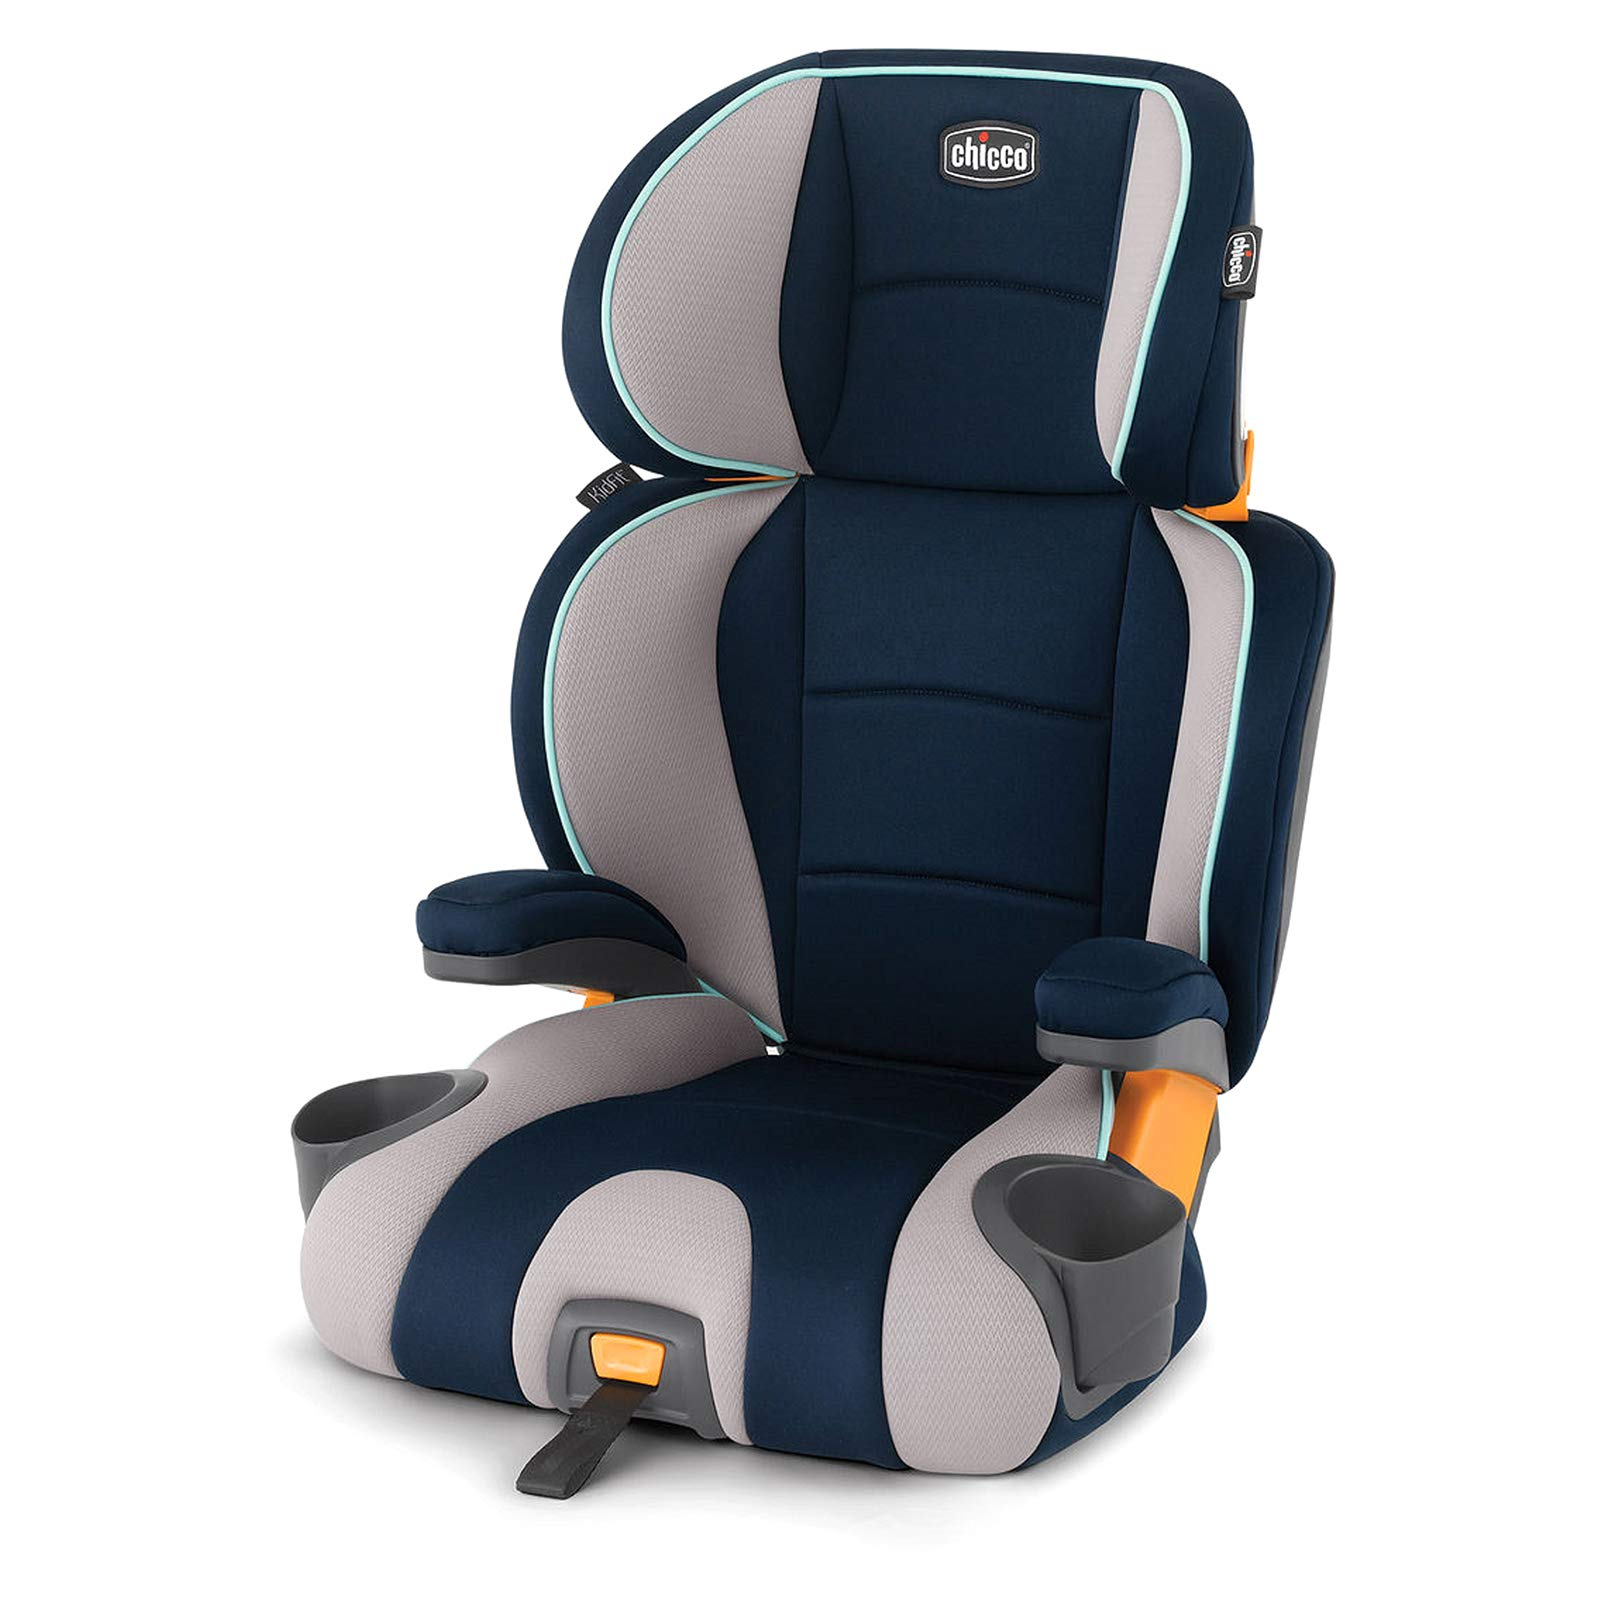 Astonishing Chicco Ch79014 54 Kid Fit Belt Booster Seat Wimbledon Blue Andrewgaddart Wooden Chair Designs For Living Room Andrewgaddartcom